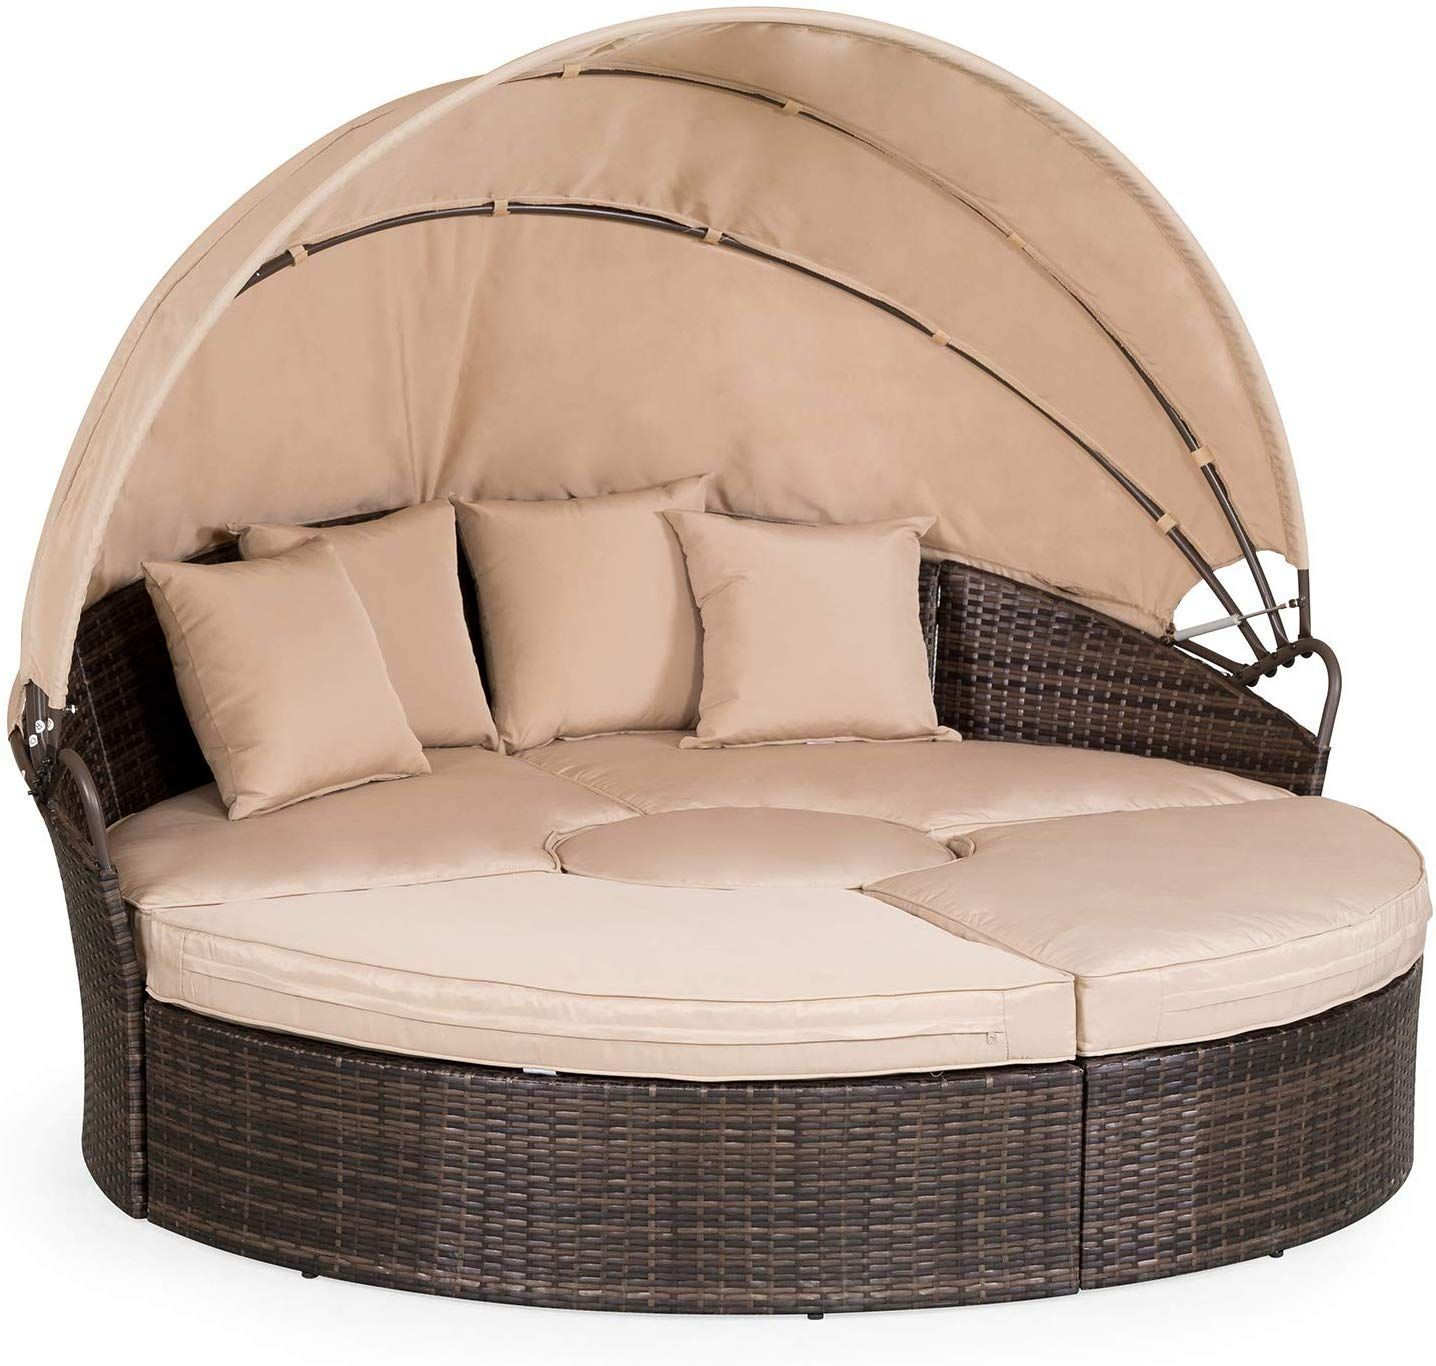 Outdoor Wicker Daybeds Rattan Patio Daybeds In 2020 Wicker